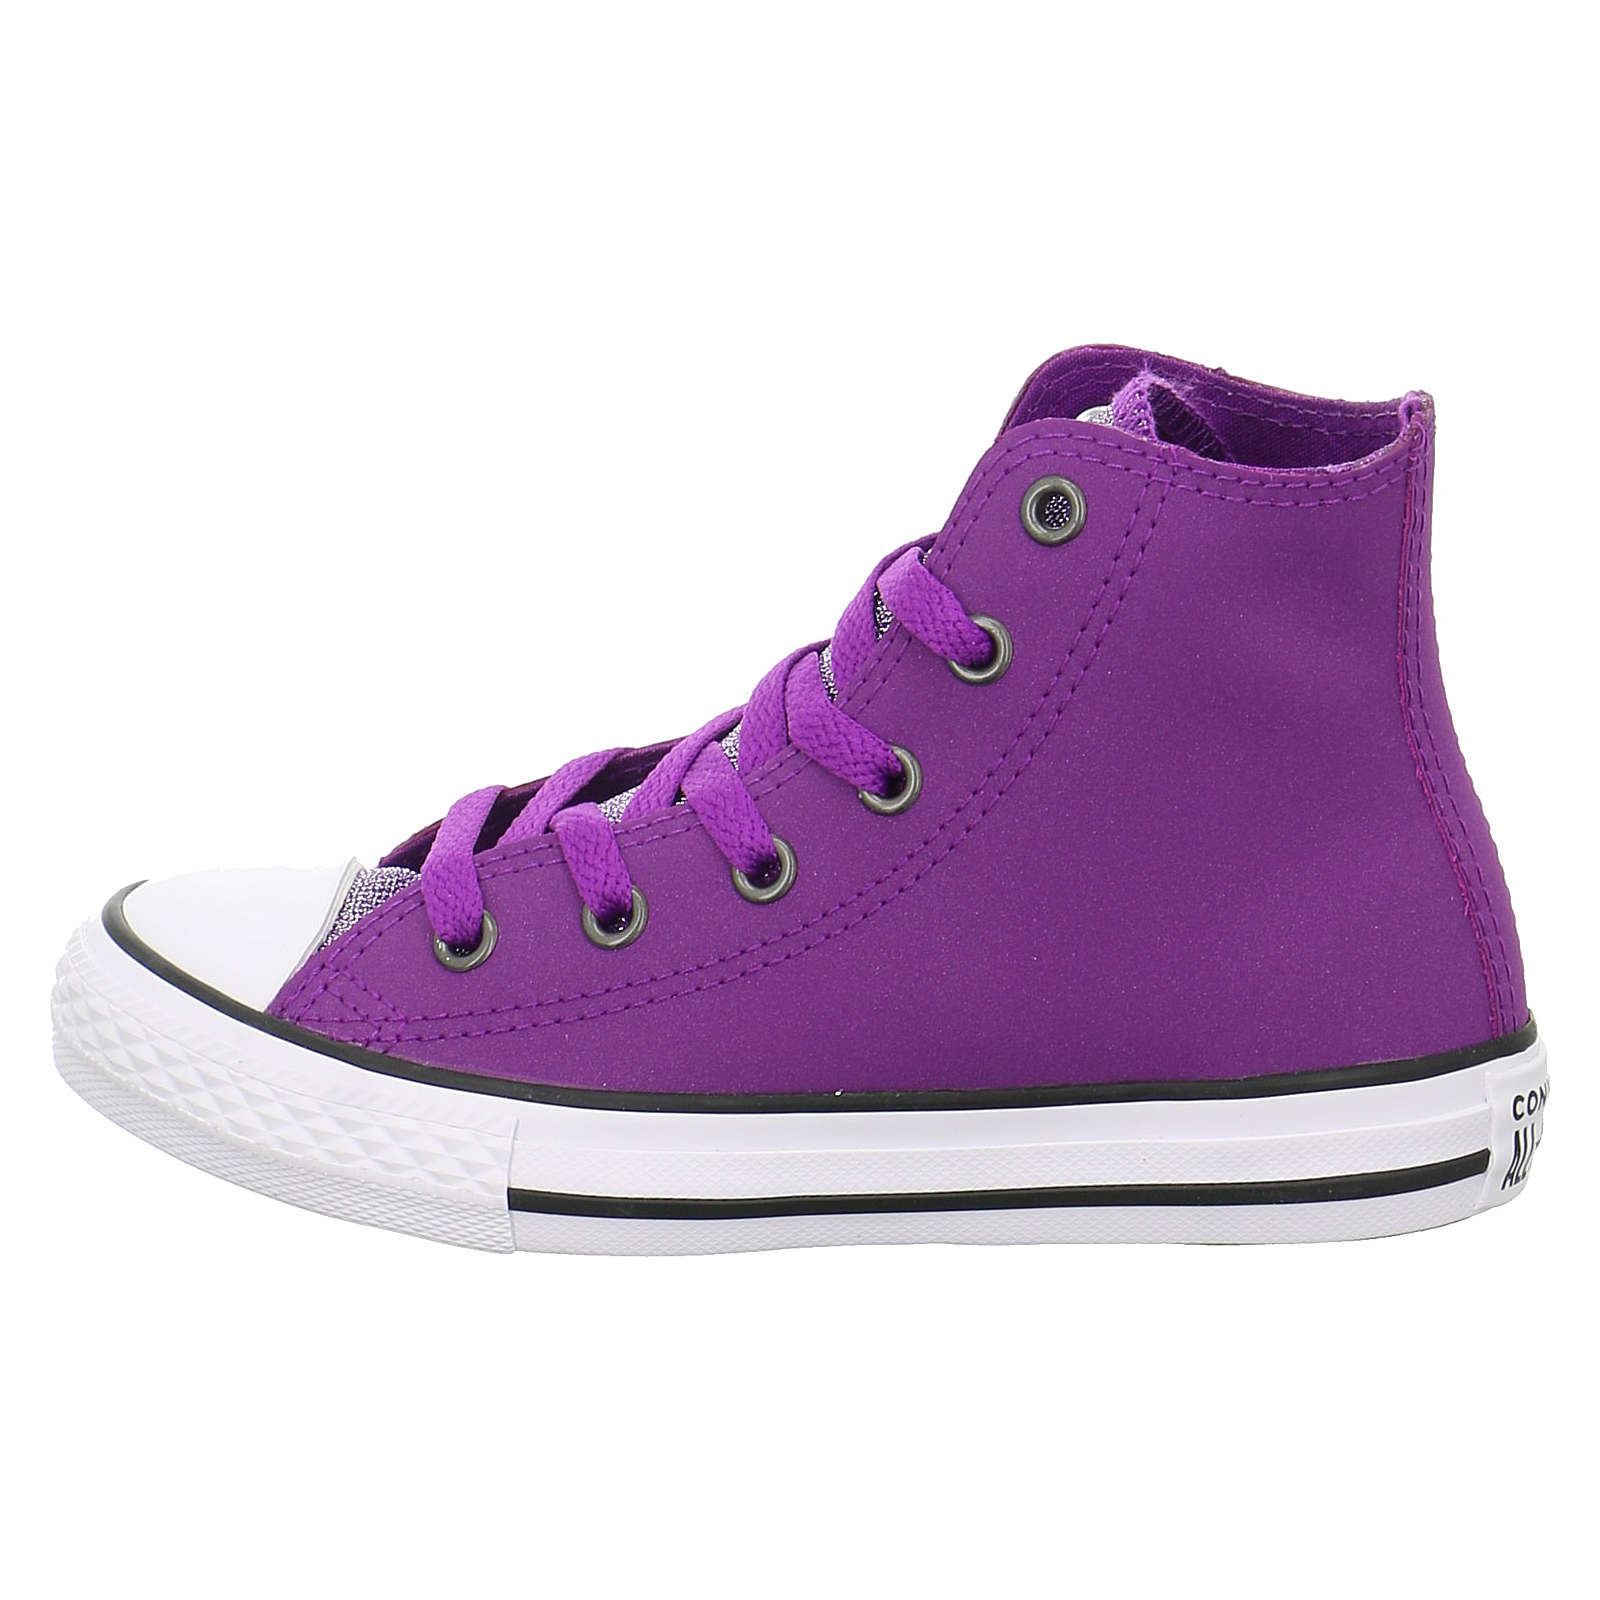 CONVERSE Kinder Sneakers Low lila Gr. 35